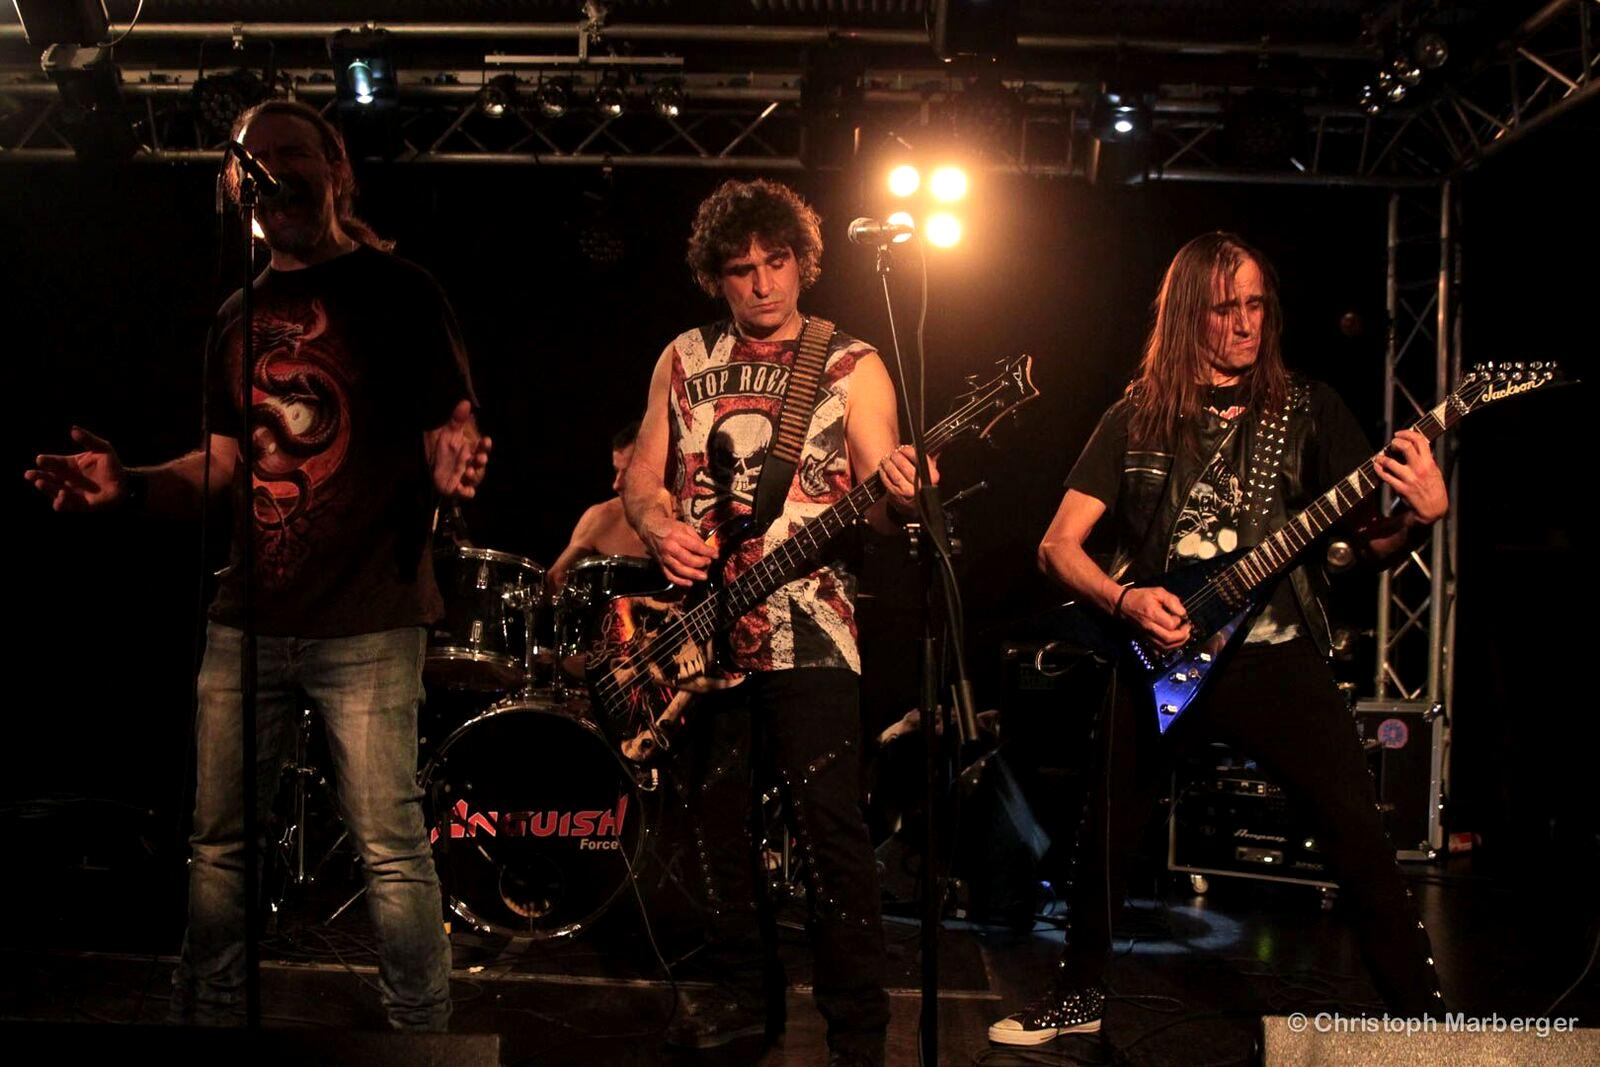 Anguish Force Livestage 69 - Raining Blood Night - Livestage Innsbruck - live